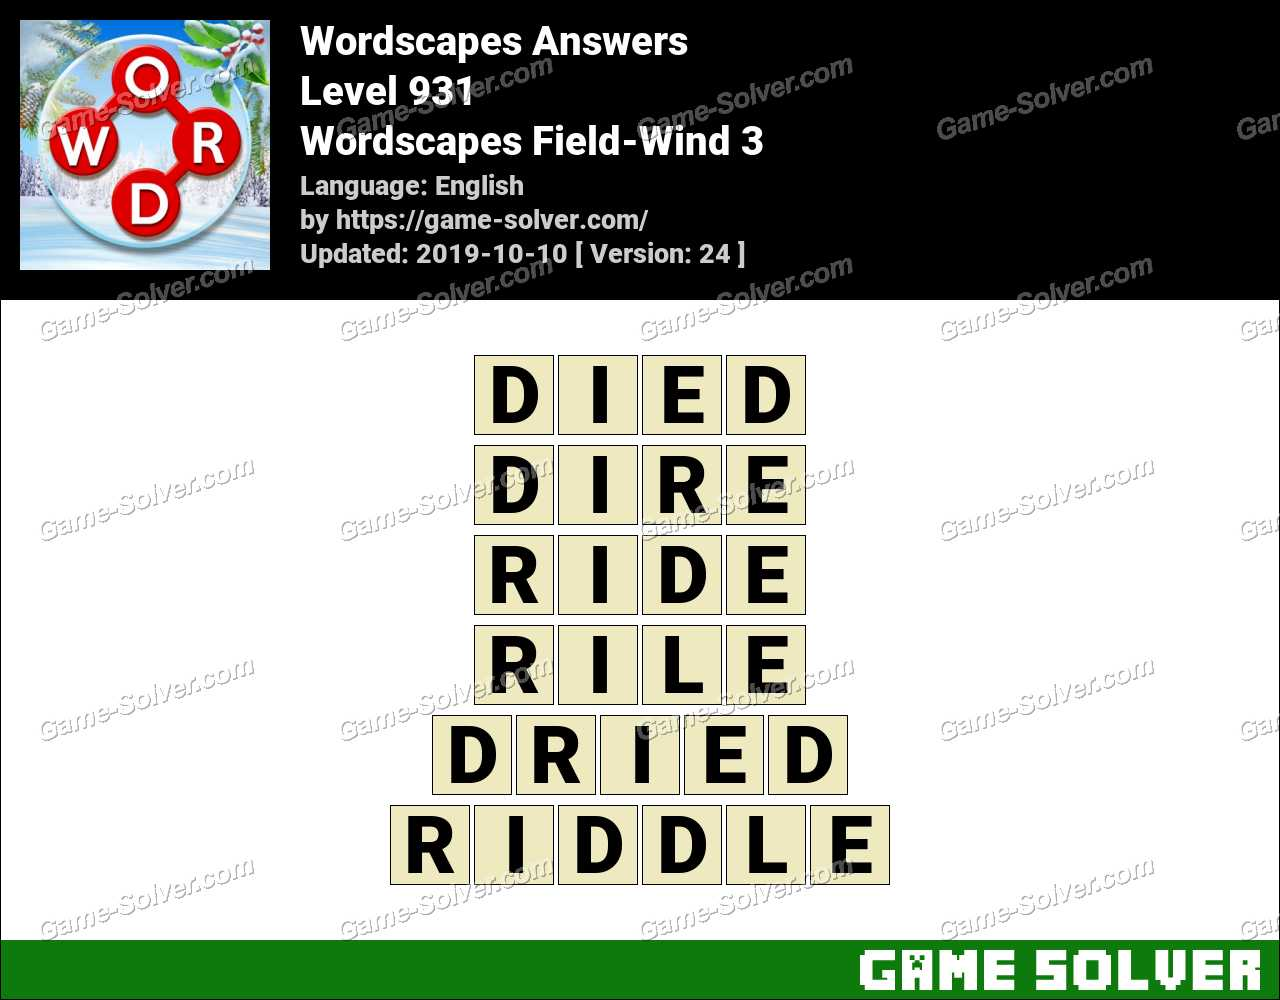 Wordscapes Field-Wind 3 Answers